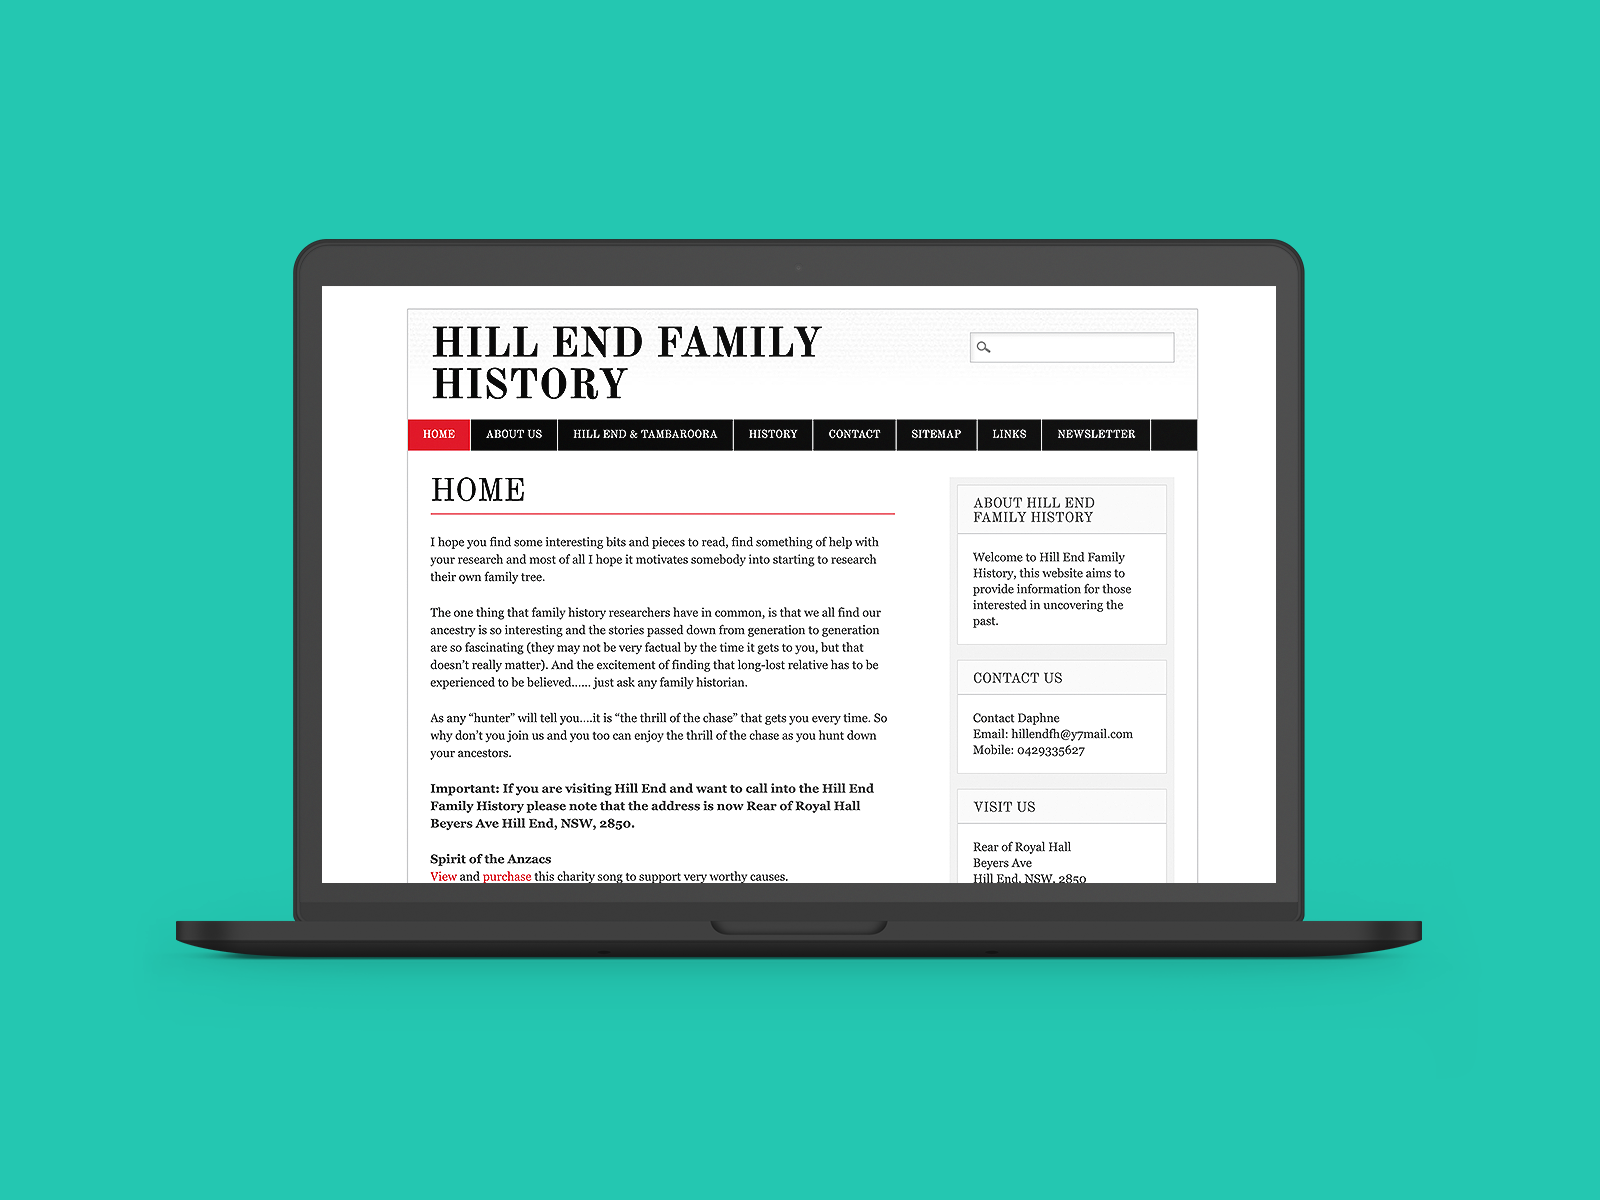 Hill End Family History Website